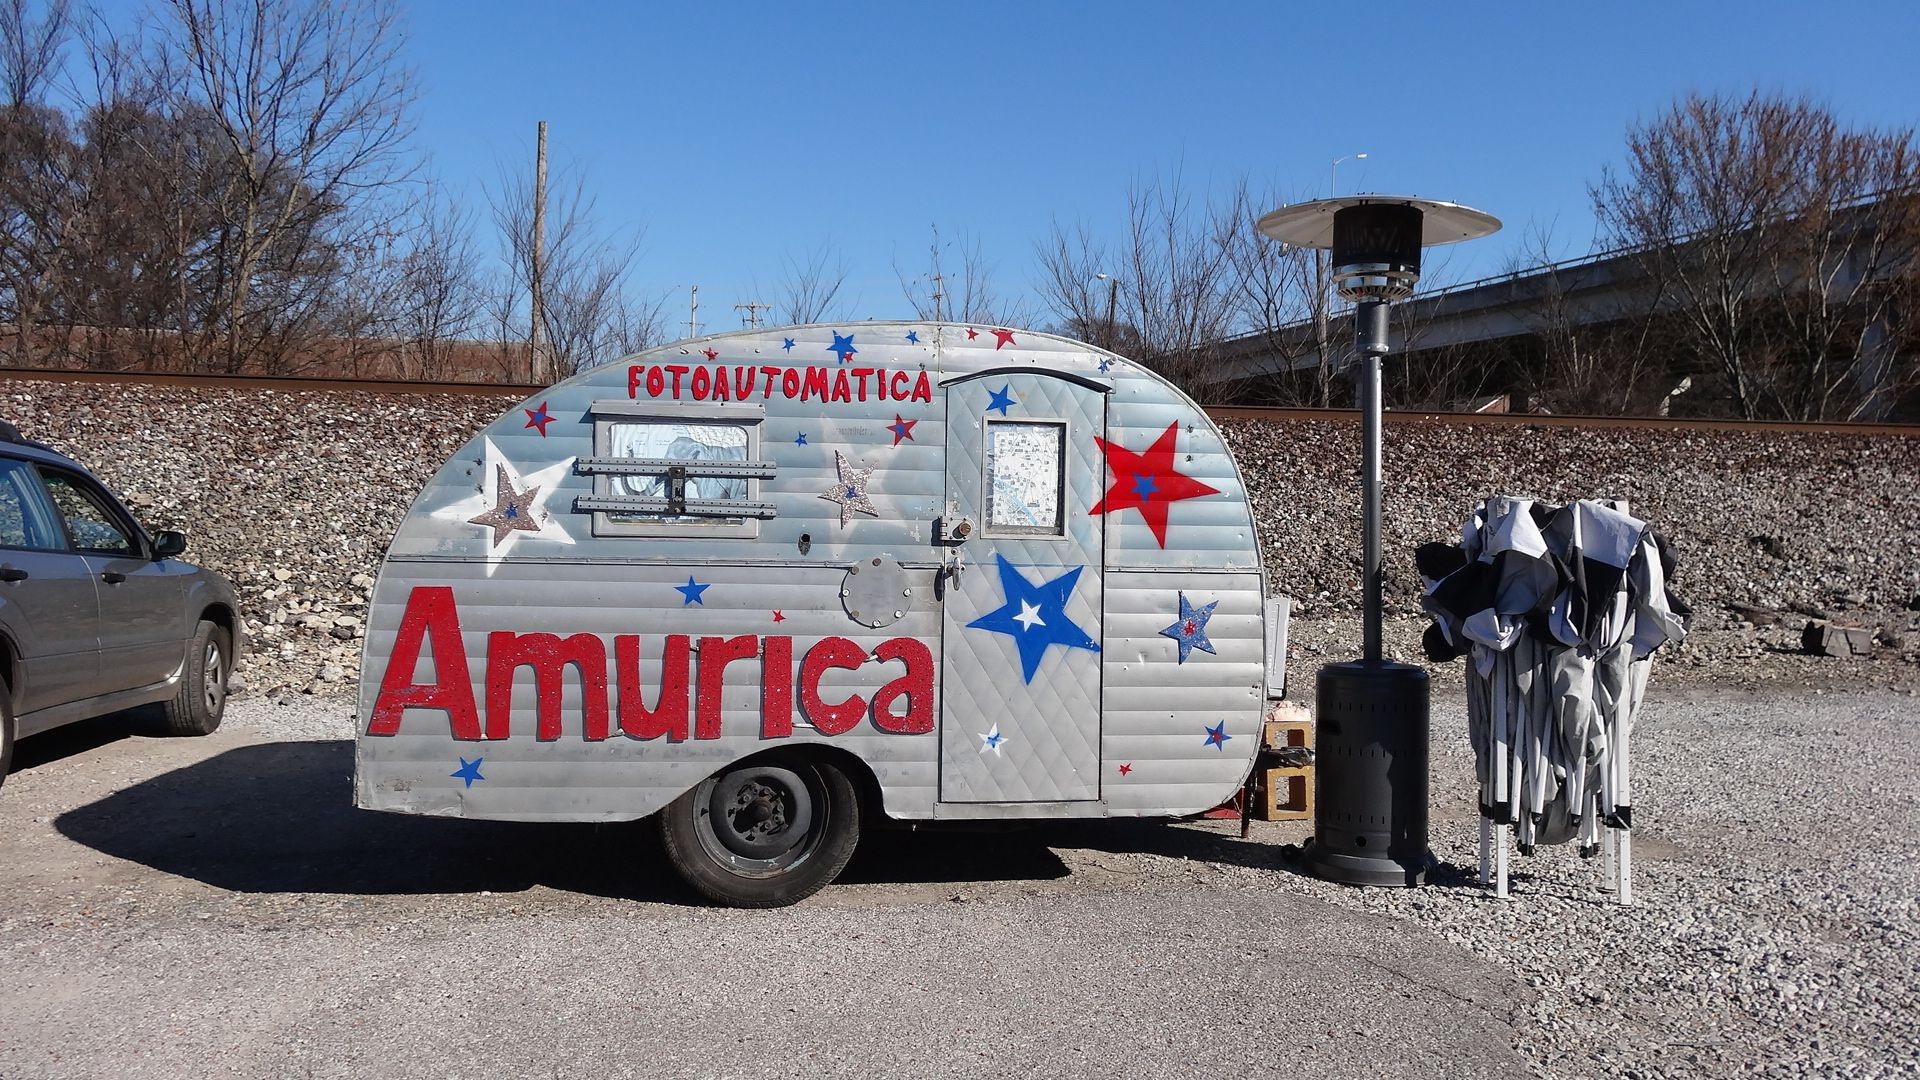 Amurica photo booth at wiseacre brewing co in 2020